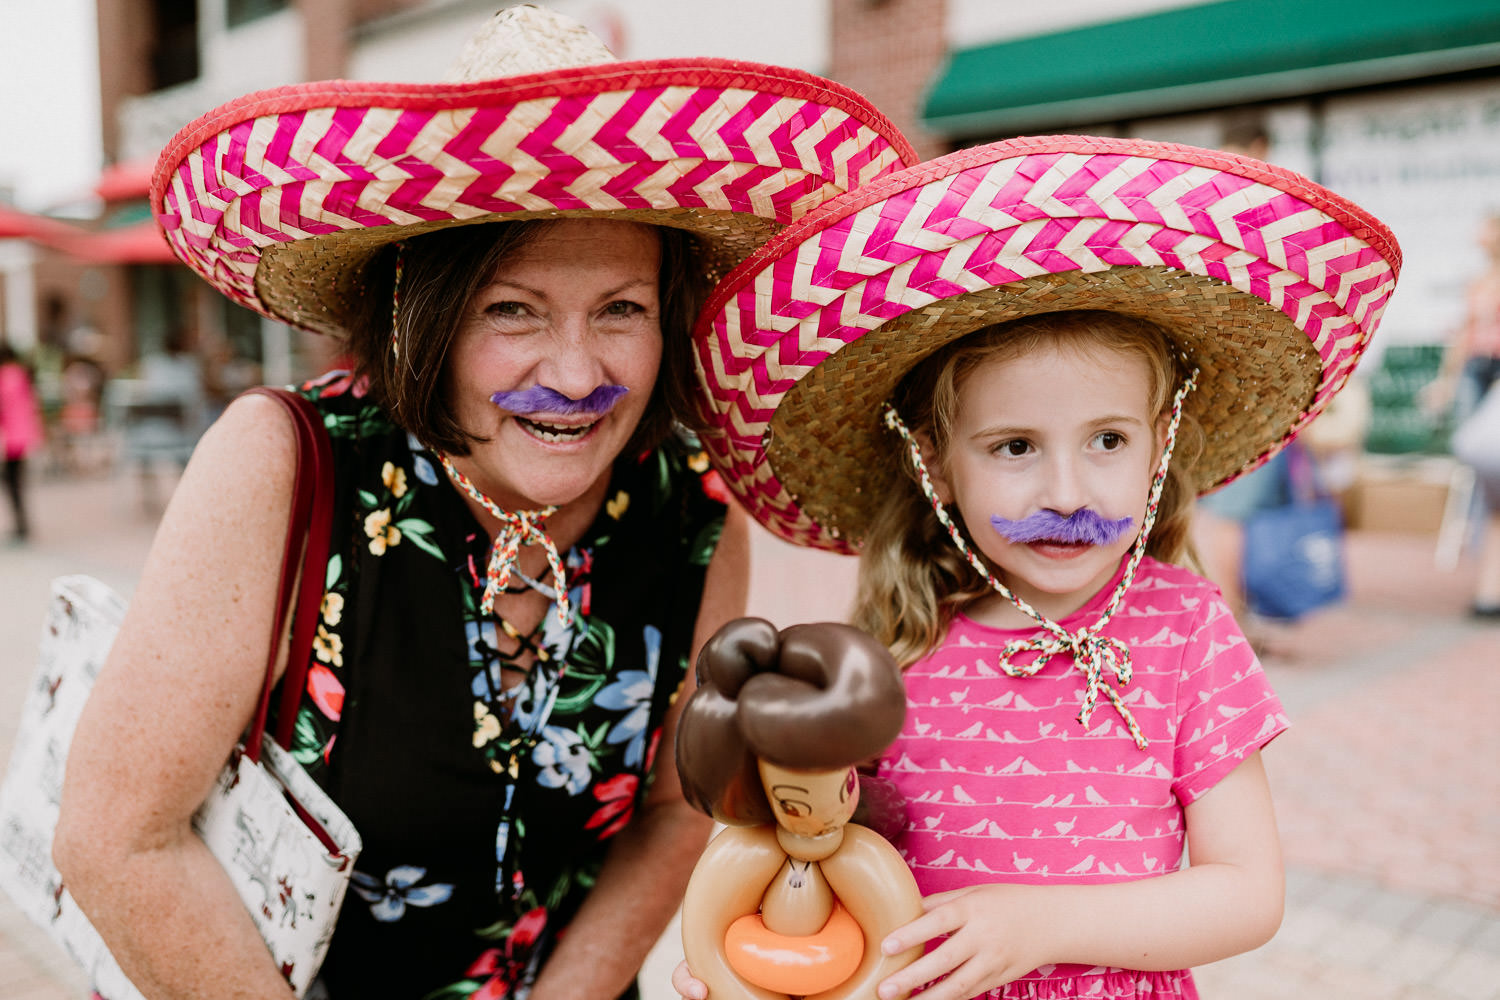 A grandmother and granddaughter wear sombreros at Fiesta Friday on 7th Street.